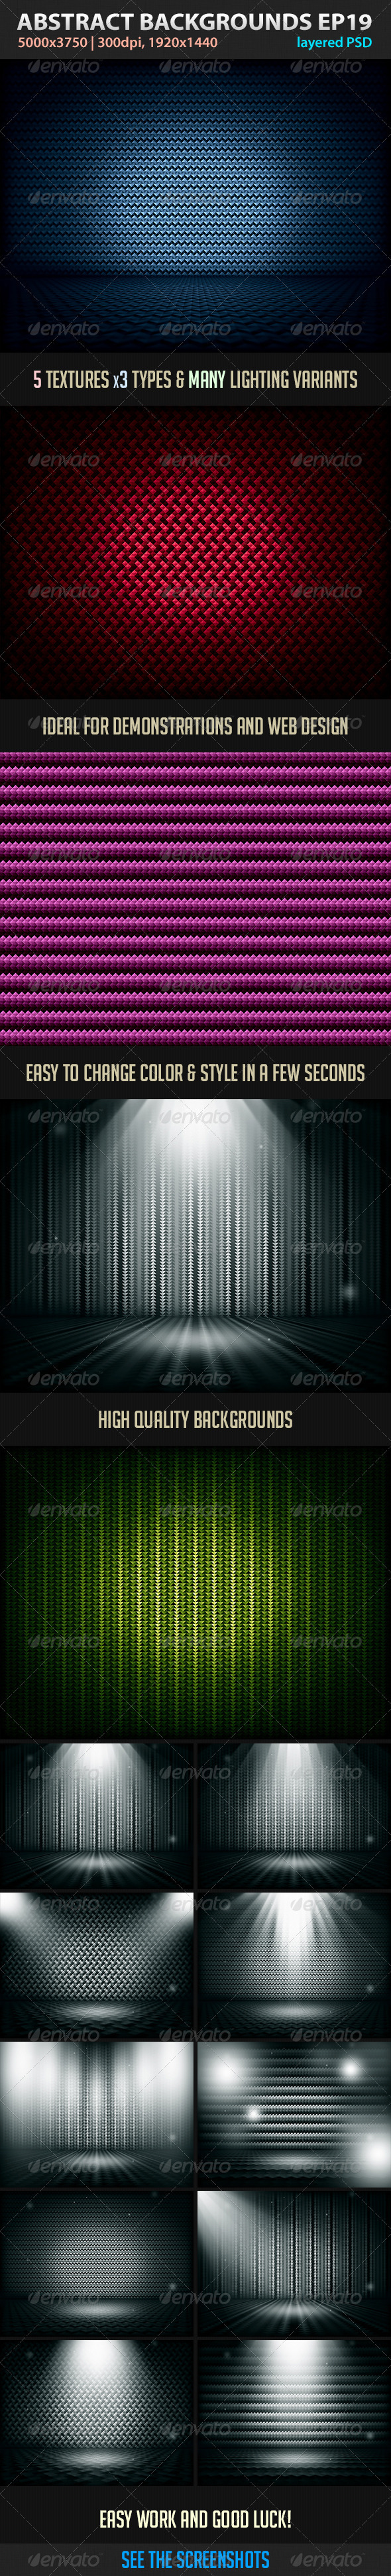 GraphicRiver Absctract Backgrounds EP 19 3542829